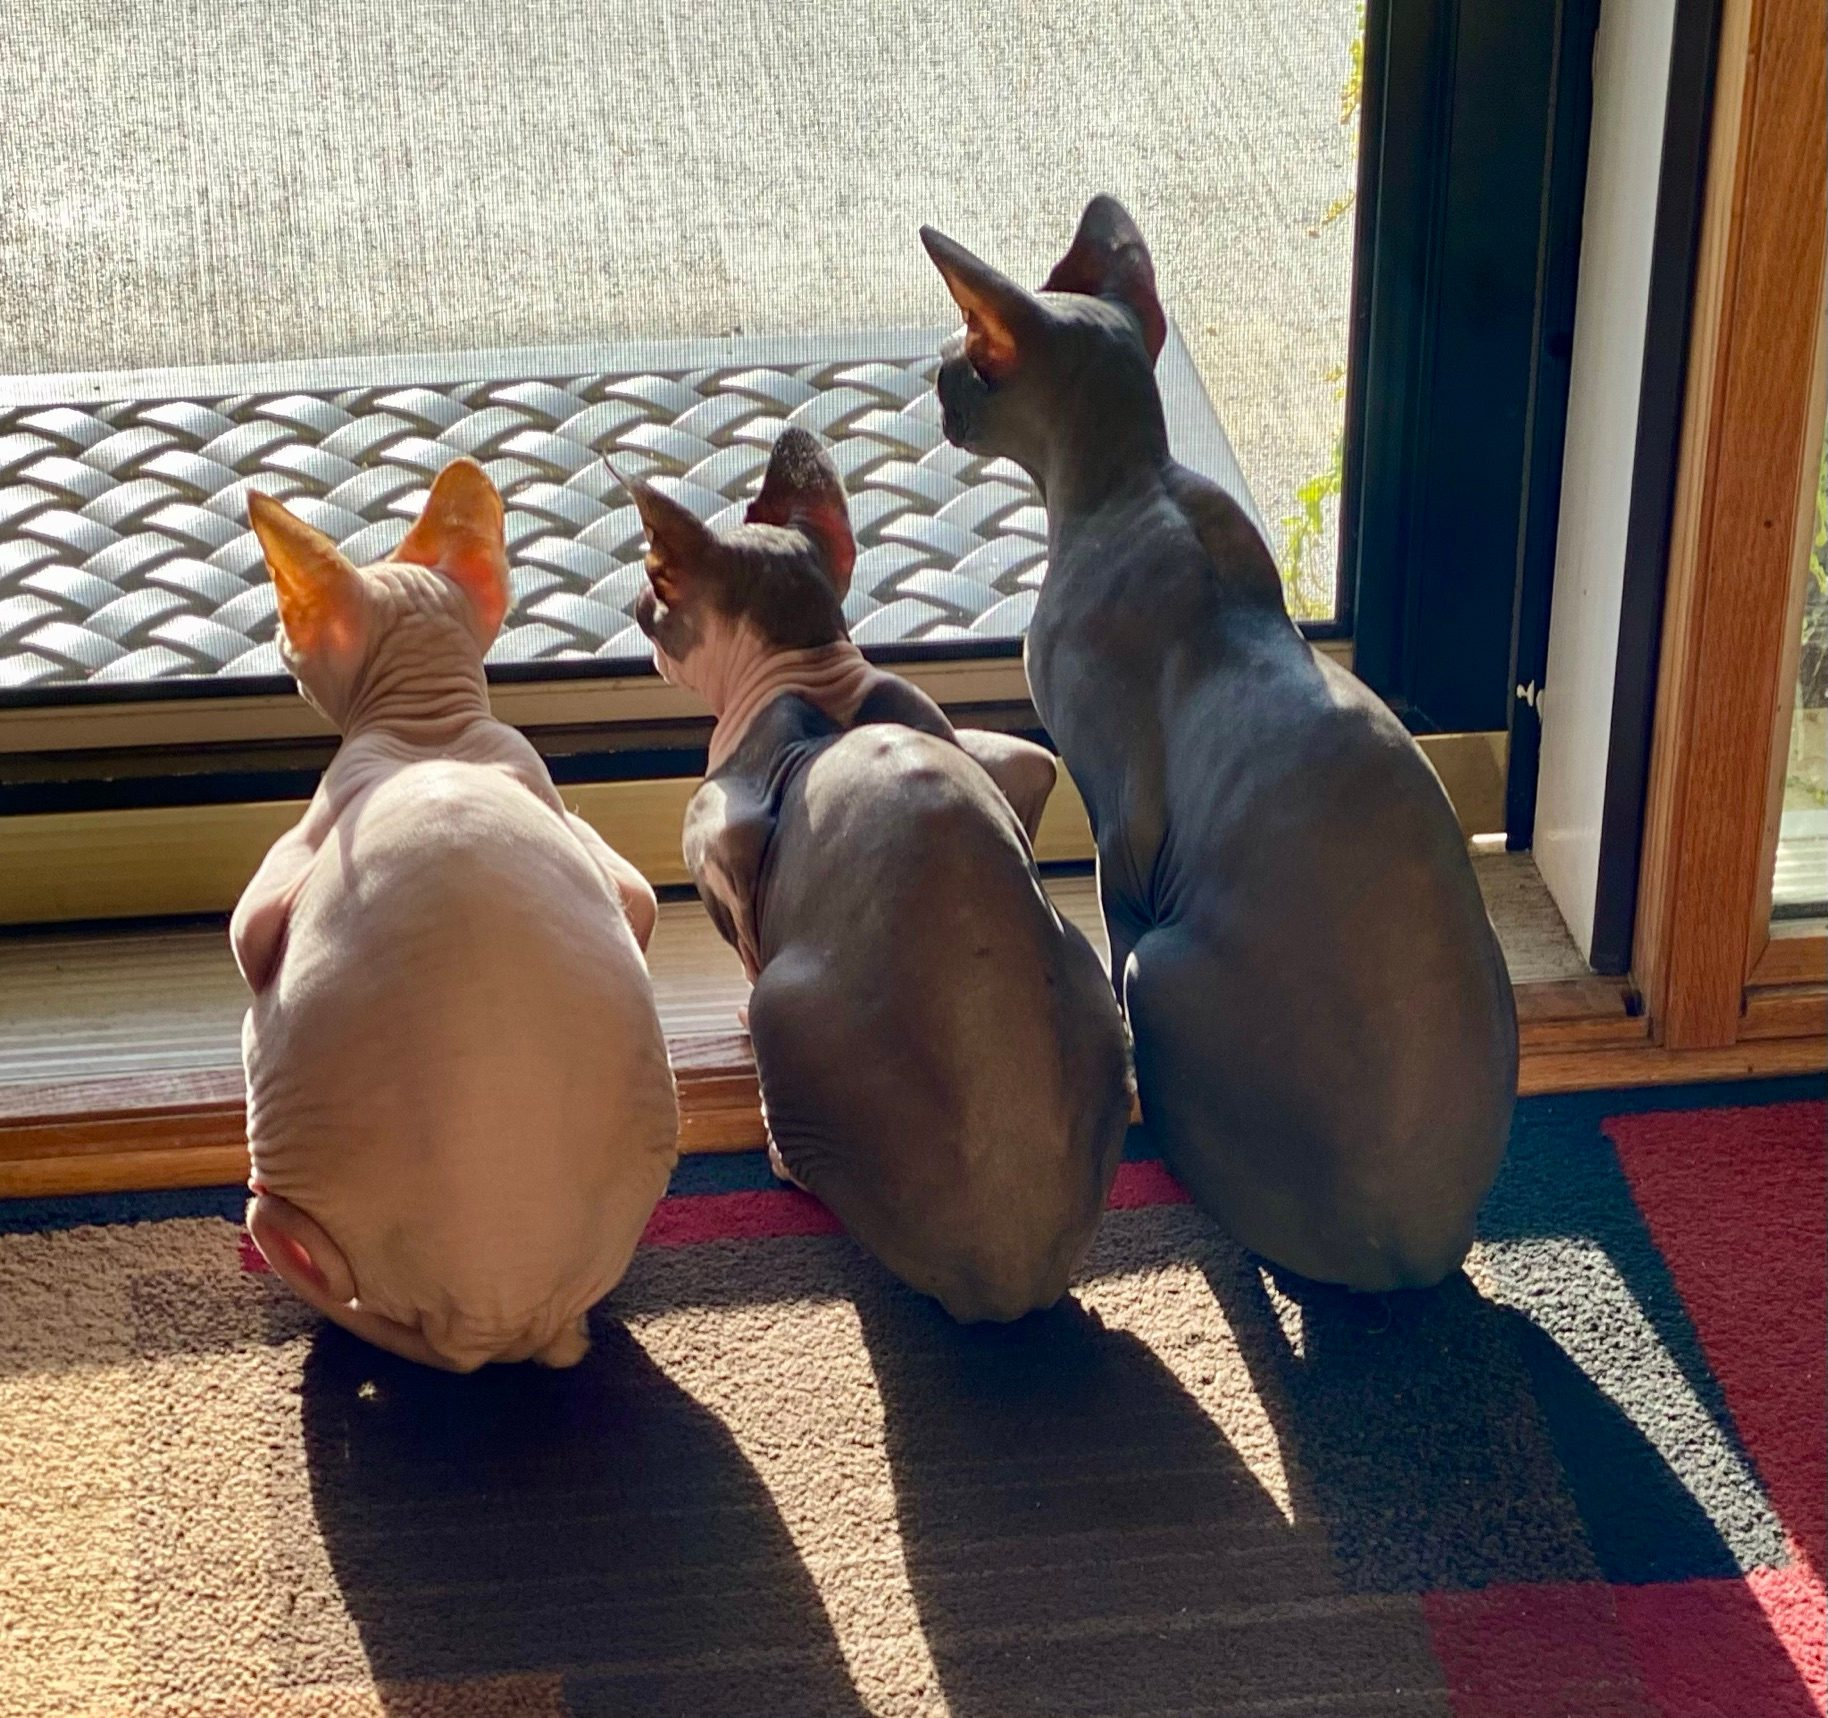 rear view of three hairless cats sitting in a row and staring intently out a glass door